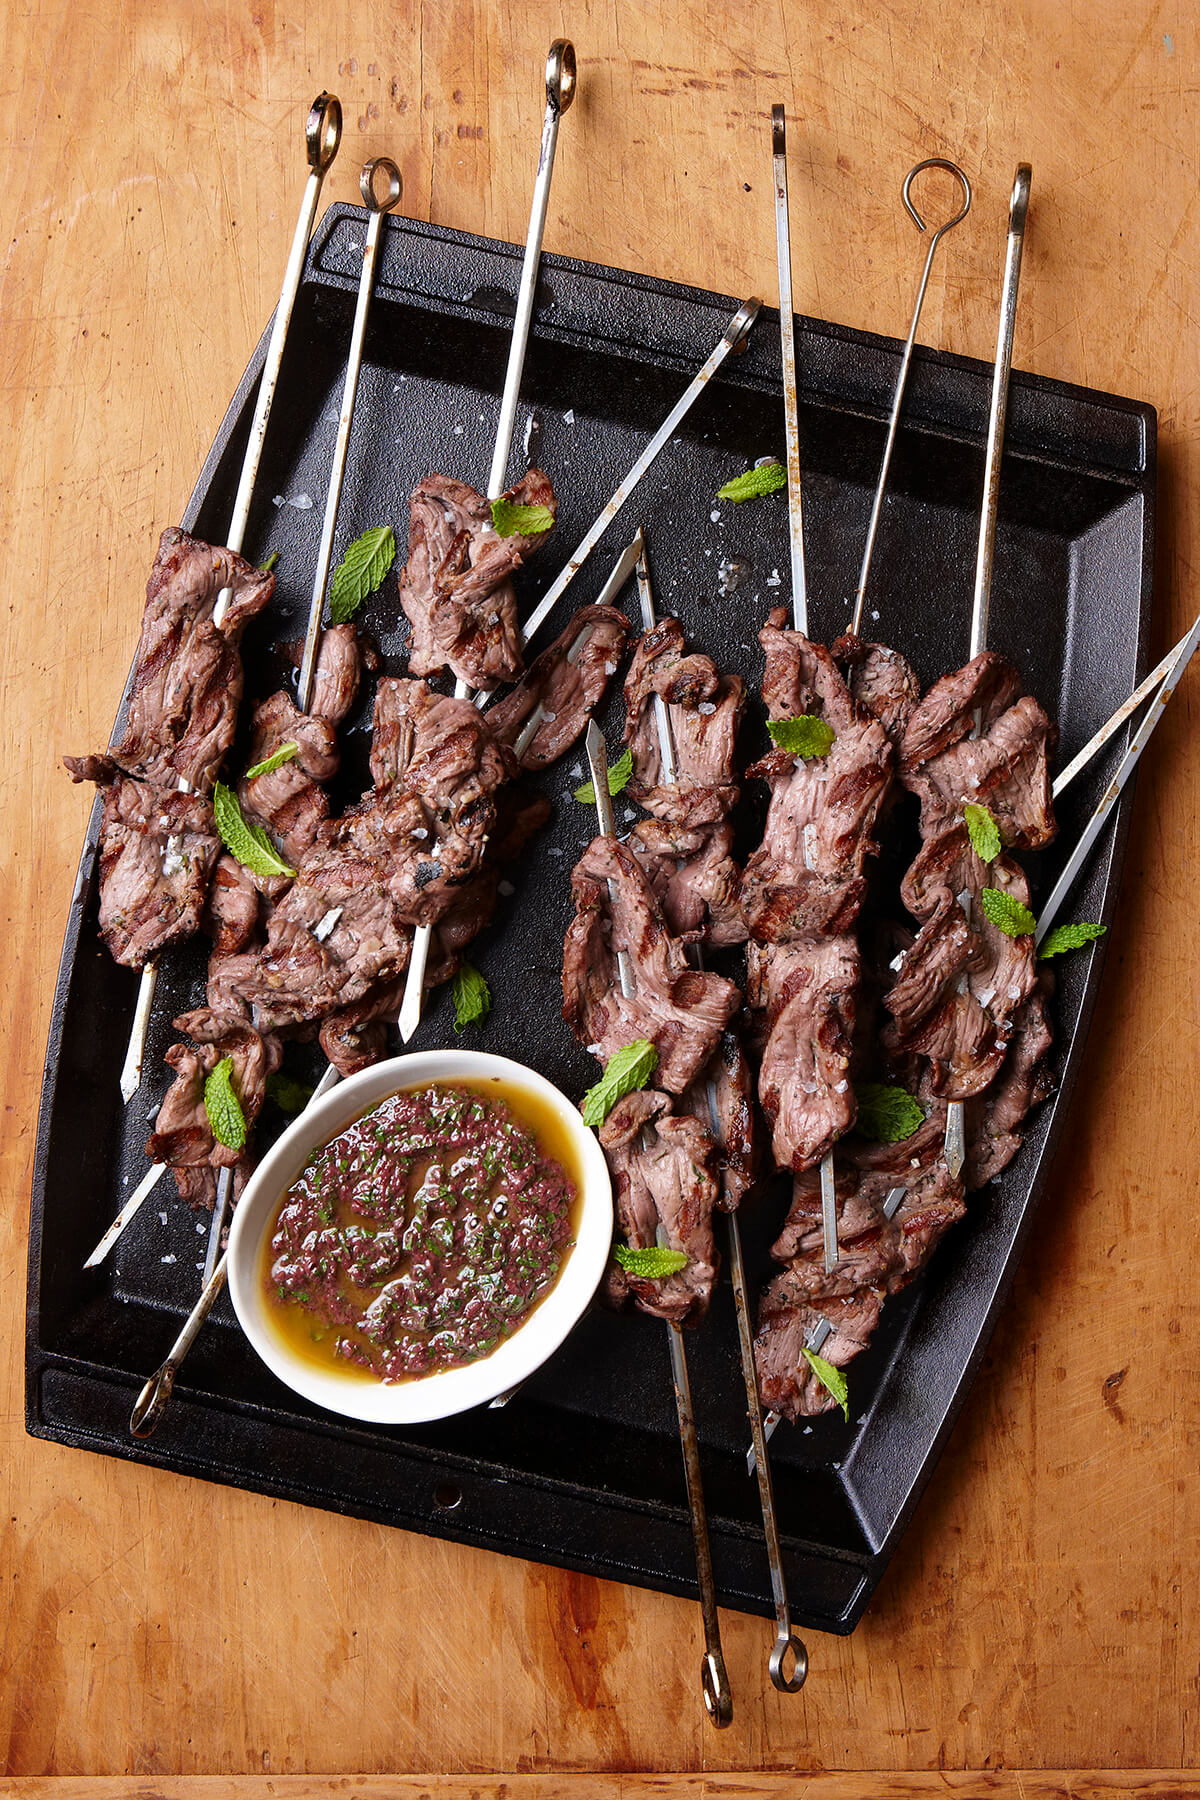 Grilled Lamb Skewers with Mint and Olive Vinaigrette